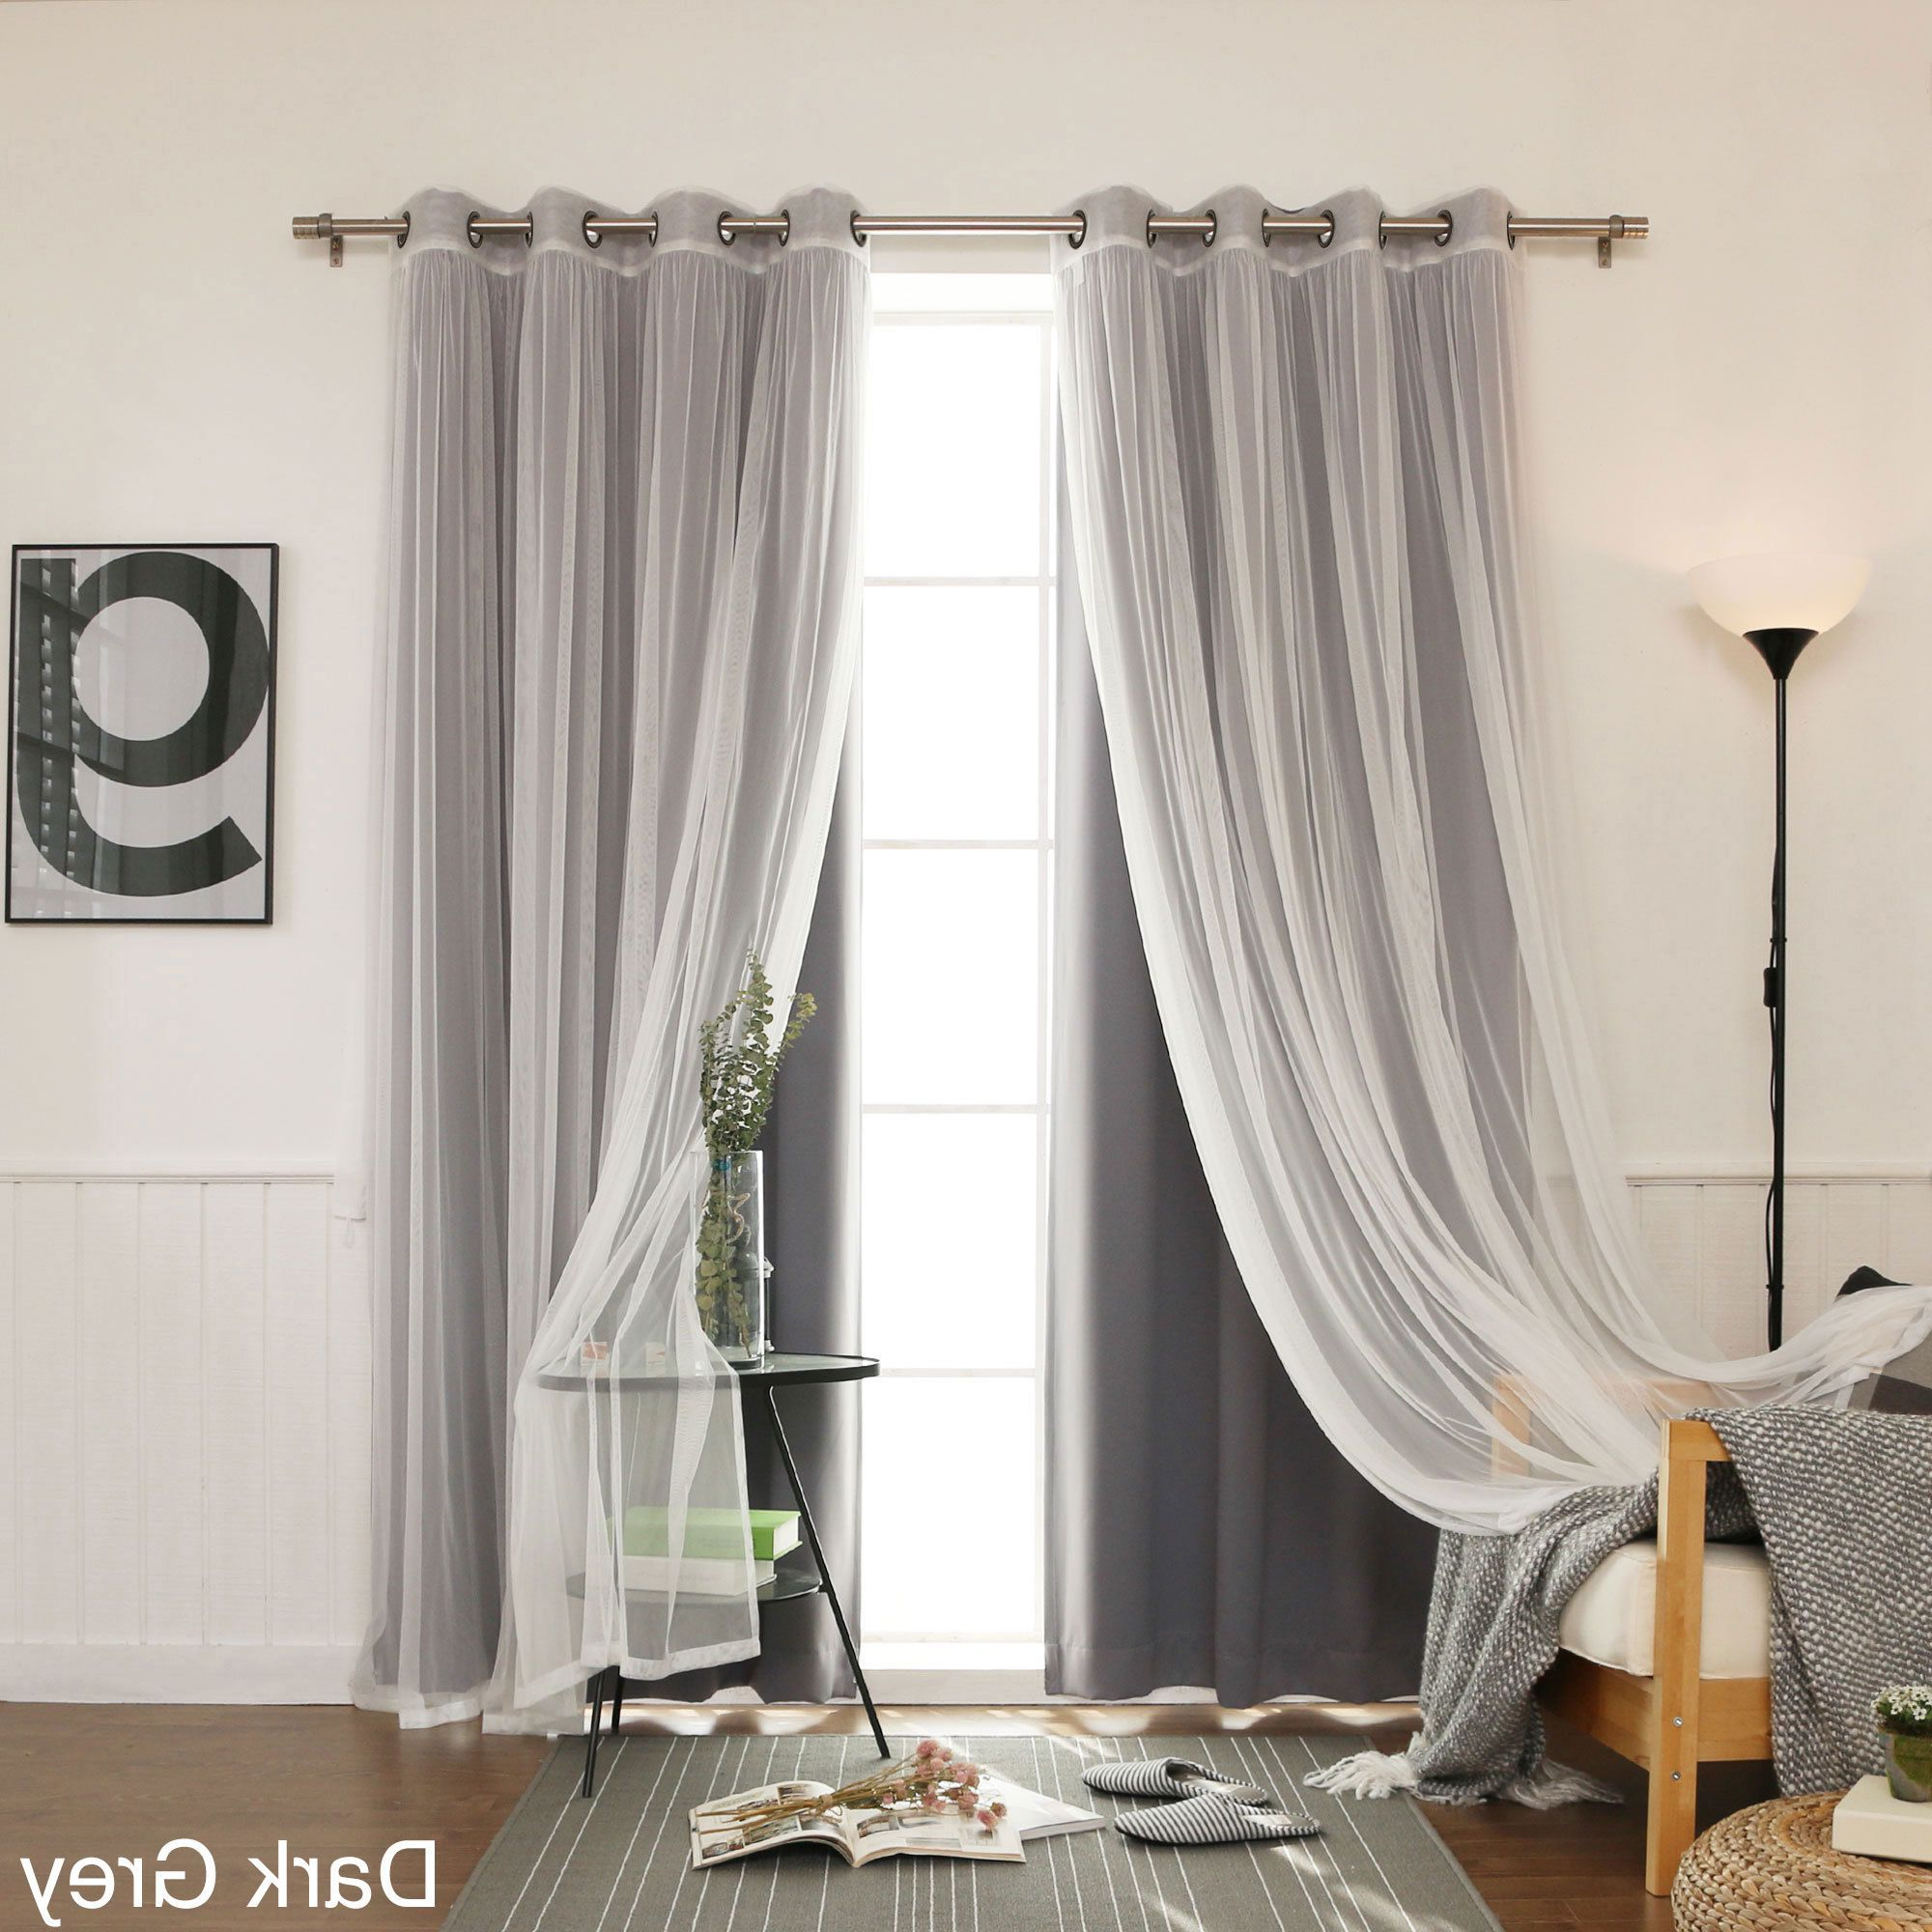 Mix & Match Blackout Tulle Lace Bronze Grommet Curtain Panel Sets With Well Known Aurora Home Mix & Match Curtains Blackout Tulle Lace Sheer (Gallery 3 of 20)